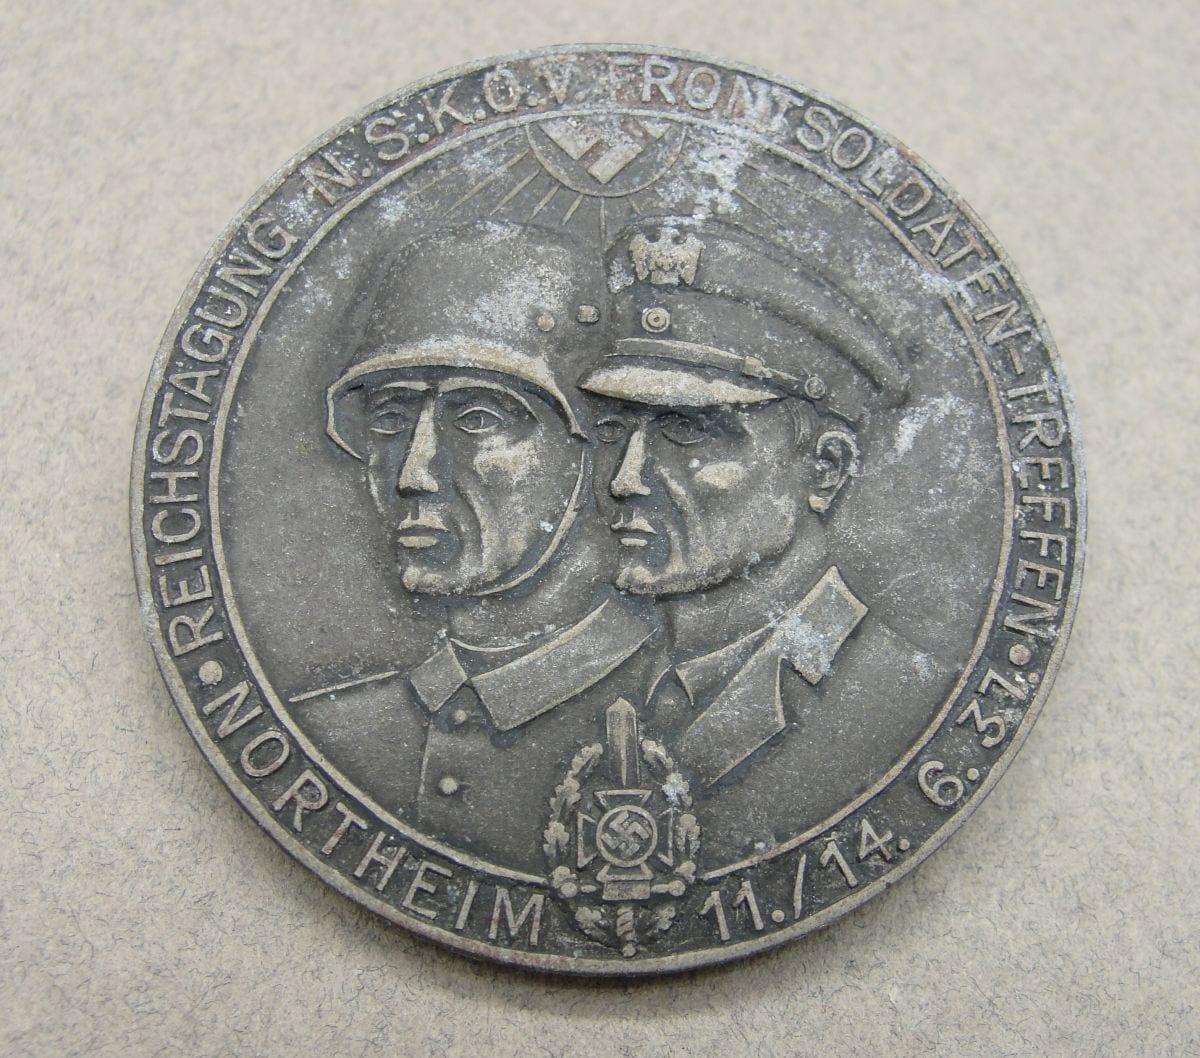 1937 NSKOV Front Fighters Day Badge